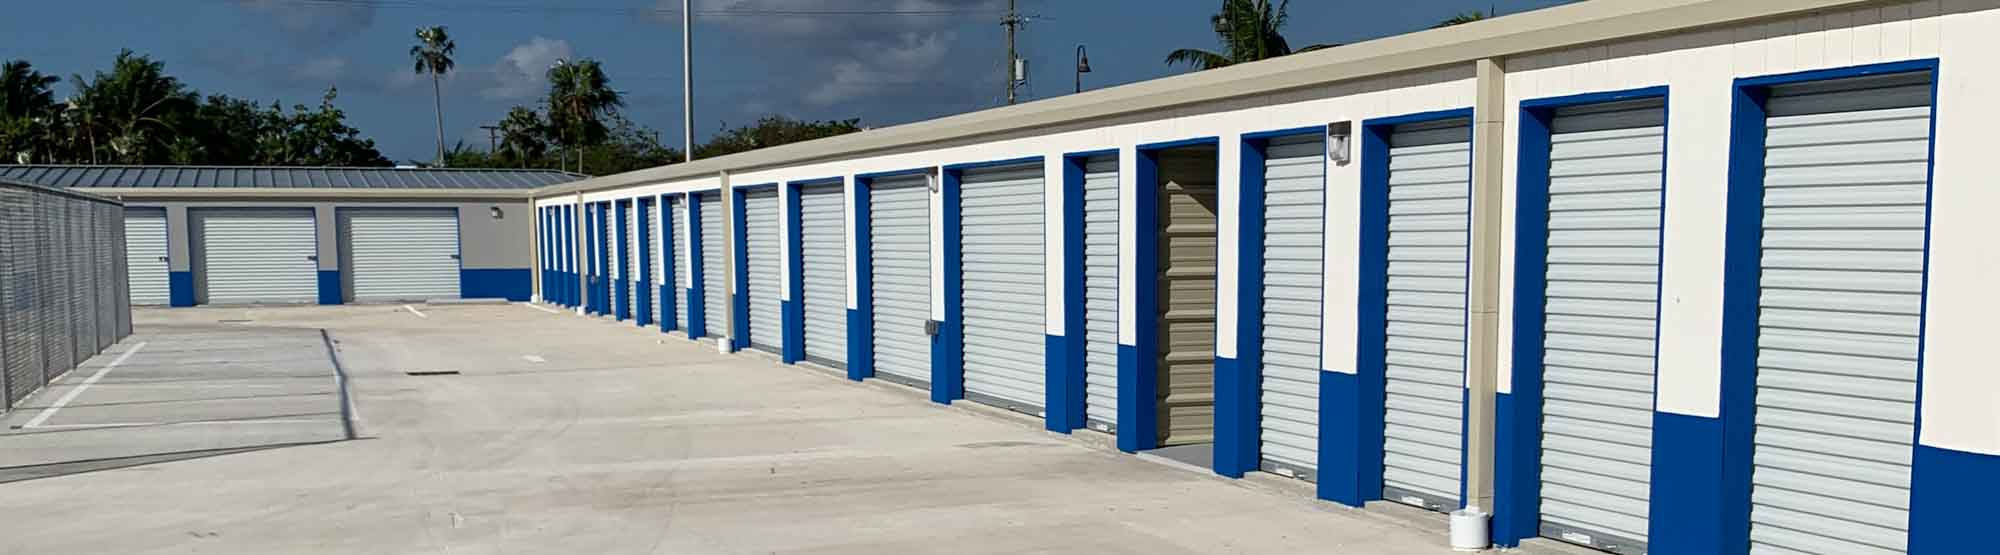 Cayman Storage. The Island's most state-of-the-art Cayman Island Storage units